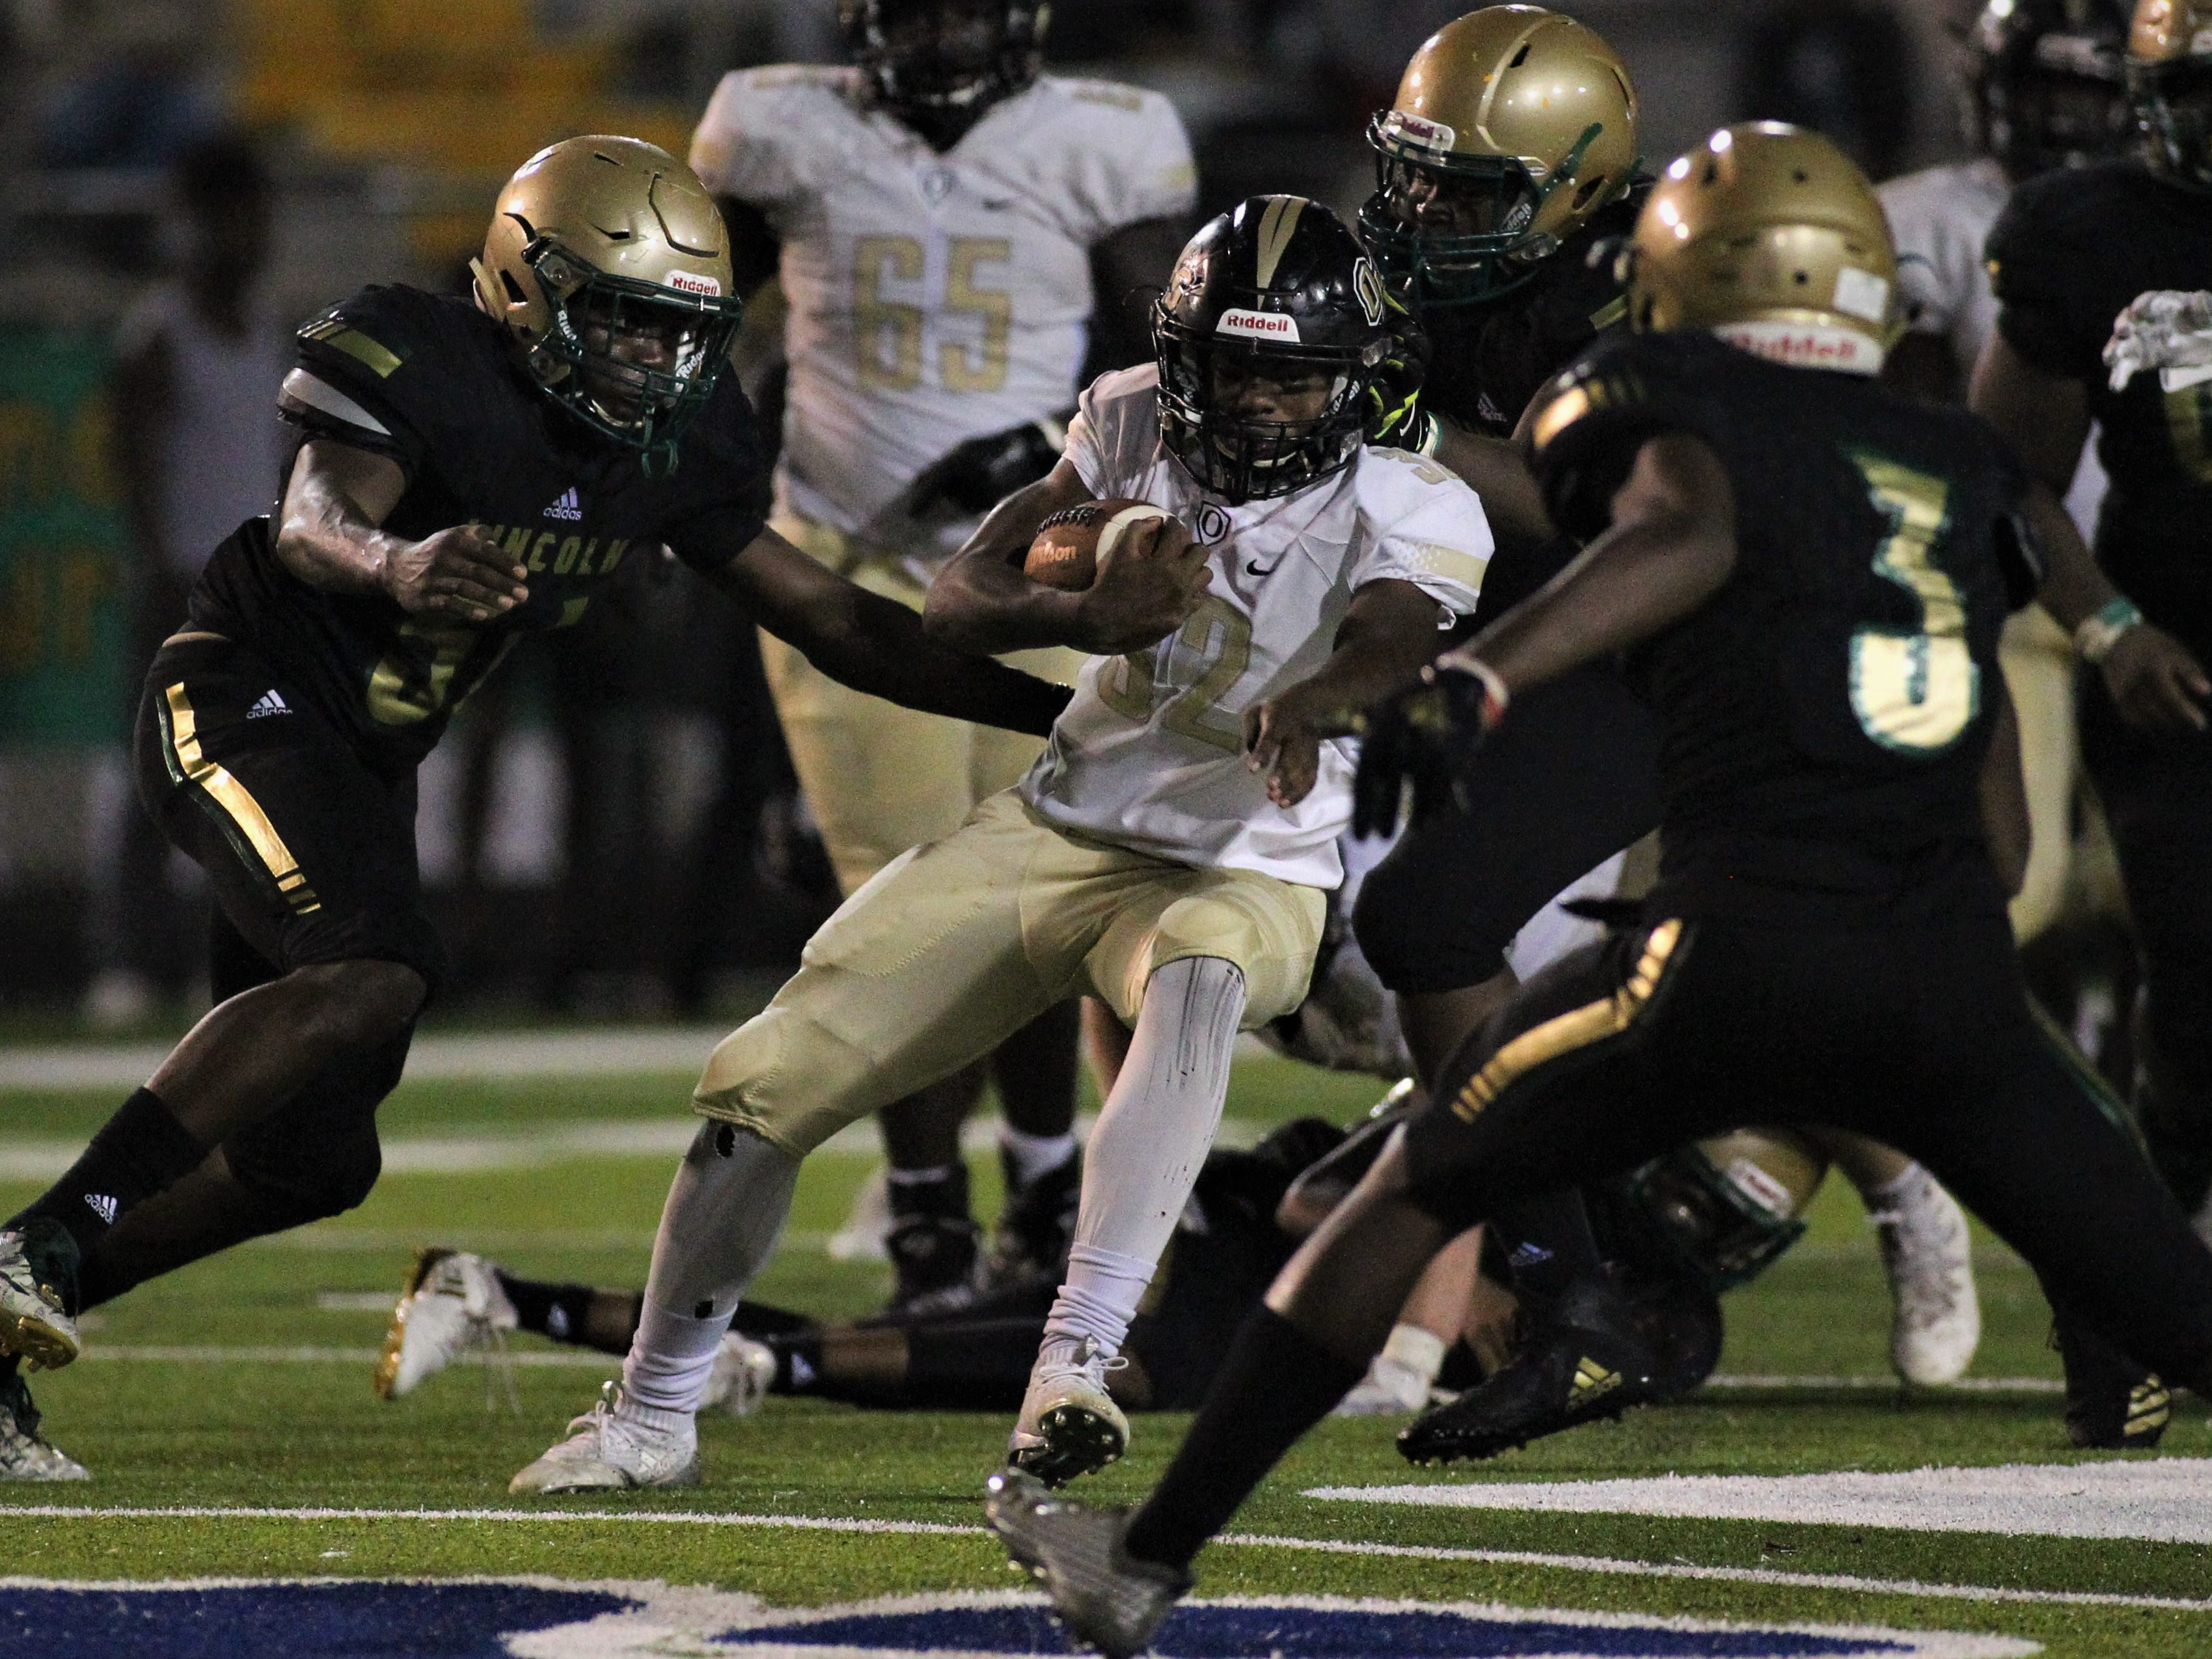 Oakleaf running back Adrian Gray is met by Lincoln defenders as the Trojans beat Oakleaf 38-31 in three overtime periods during a Region 1-7A quarterfinal Thursday night at Gene Cox Stadium.